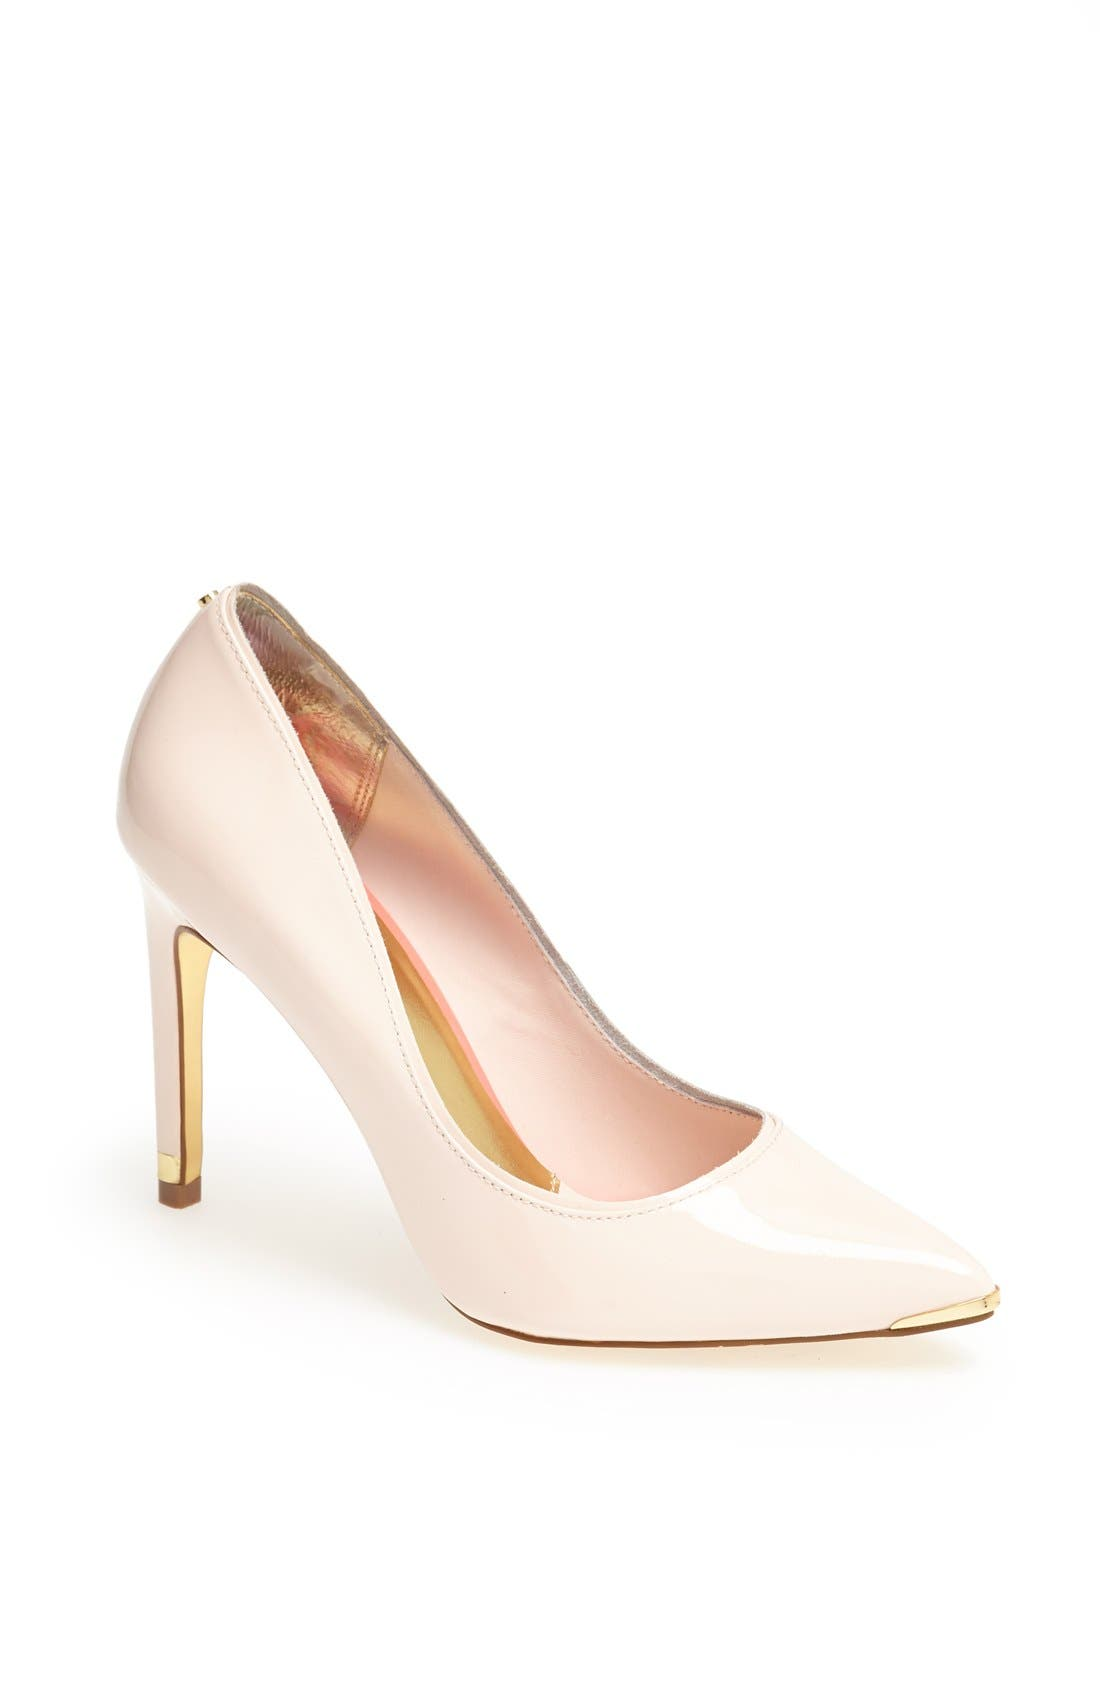 Main Image - Ted Baker London 'Thaya' Leather Pointy Toe Pump